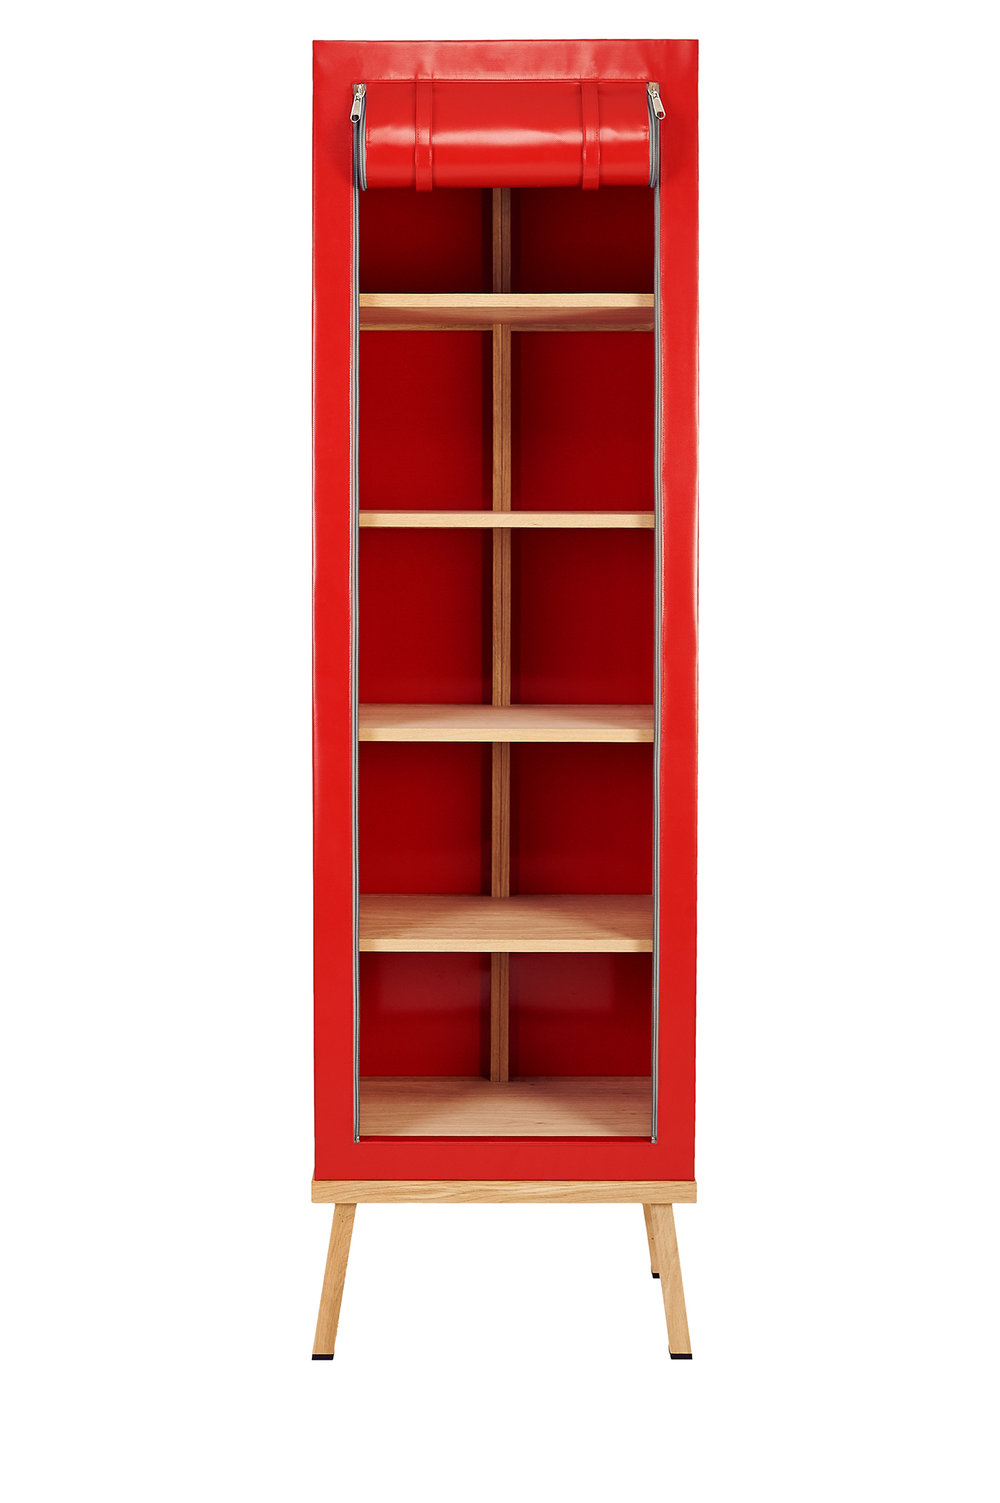 Truecolors Cabinet Visser + Meijwaard Netherlands 2015 PVC cloth with oak wood frame H 78.75 in, W 15.75 in, D 23.75 in LIST PRICE: Cube $5,125 DESIGNER DISCOUNT PRICE: $4,356.25 LEAD TIME: 8-10 weeks QUANTITY IN STOCK: 0 ONLINE PLATFORMS: kM Web, Artsy, 1st Dibs